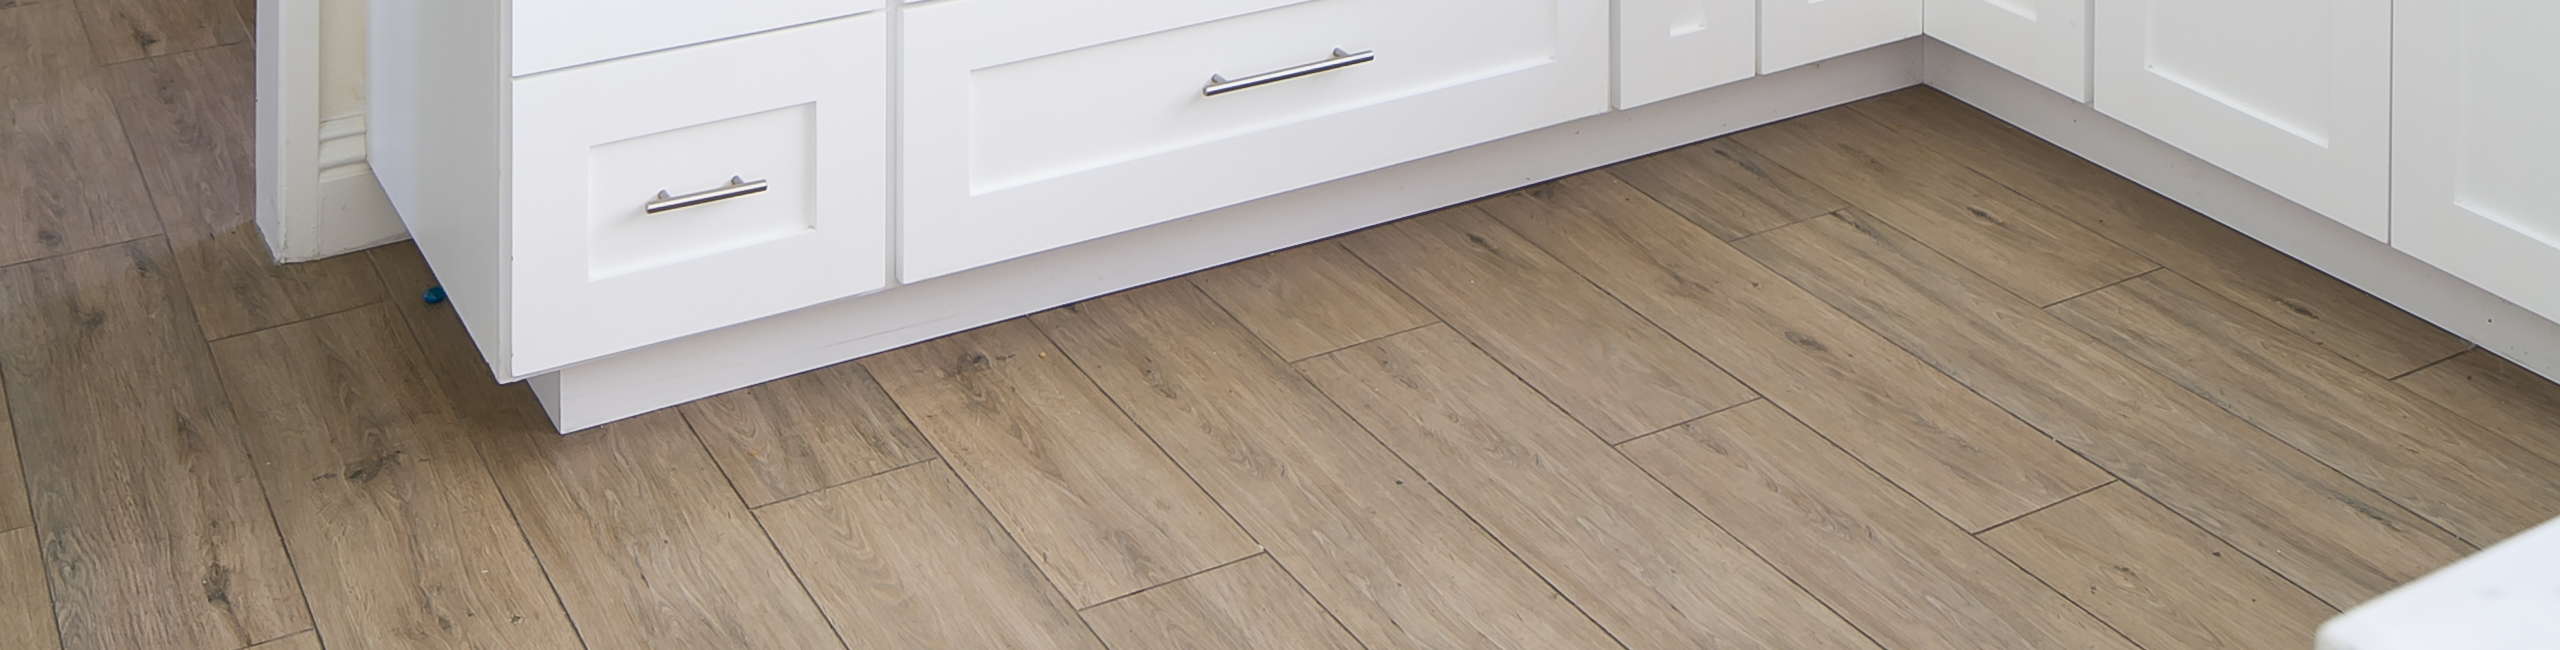 Our 7 Favorite Wood-look Porcelain Tiles - Shown: Titus Camel